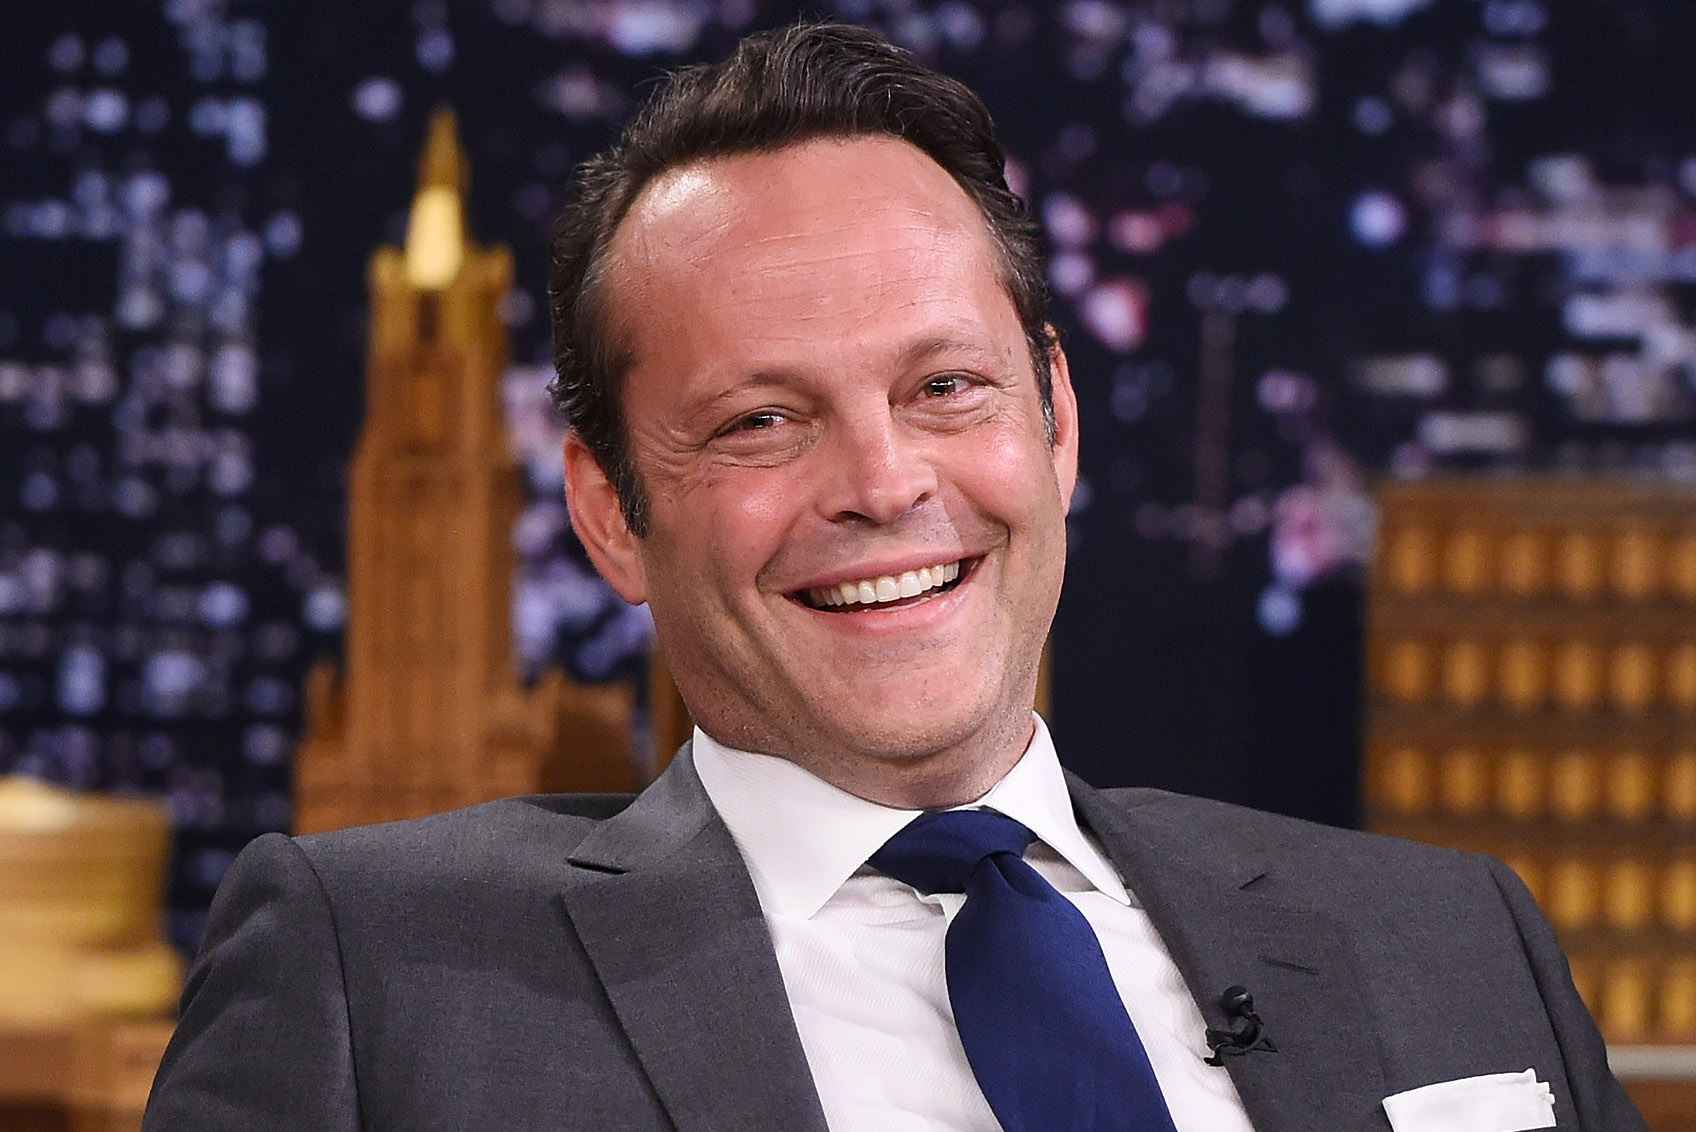 vince-vaughn-jimmy-fallon-do-5-second-mo